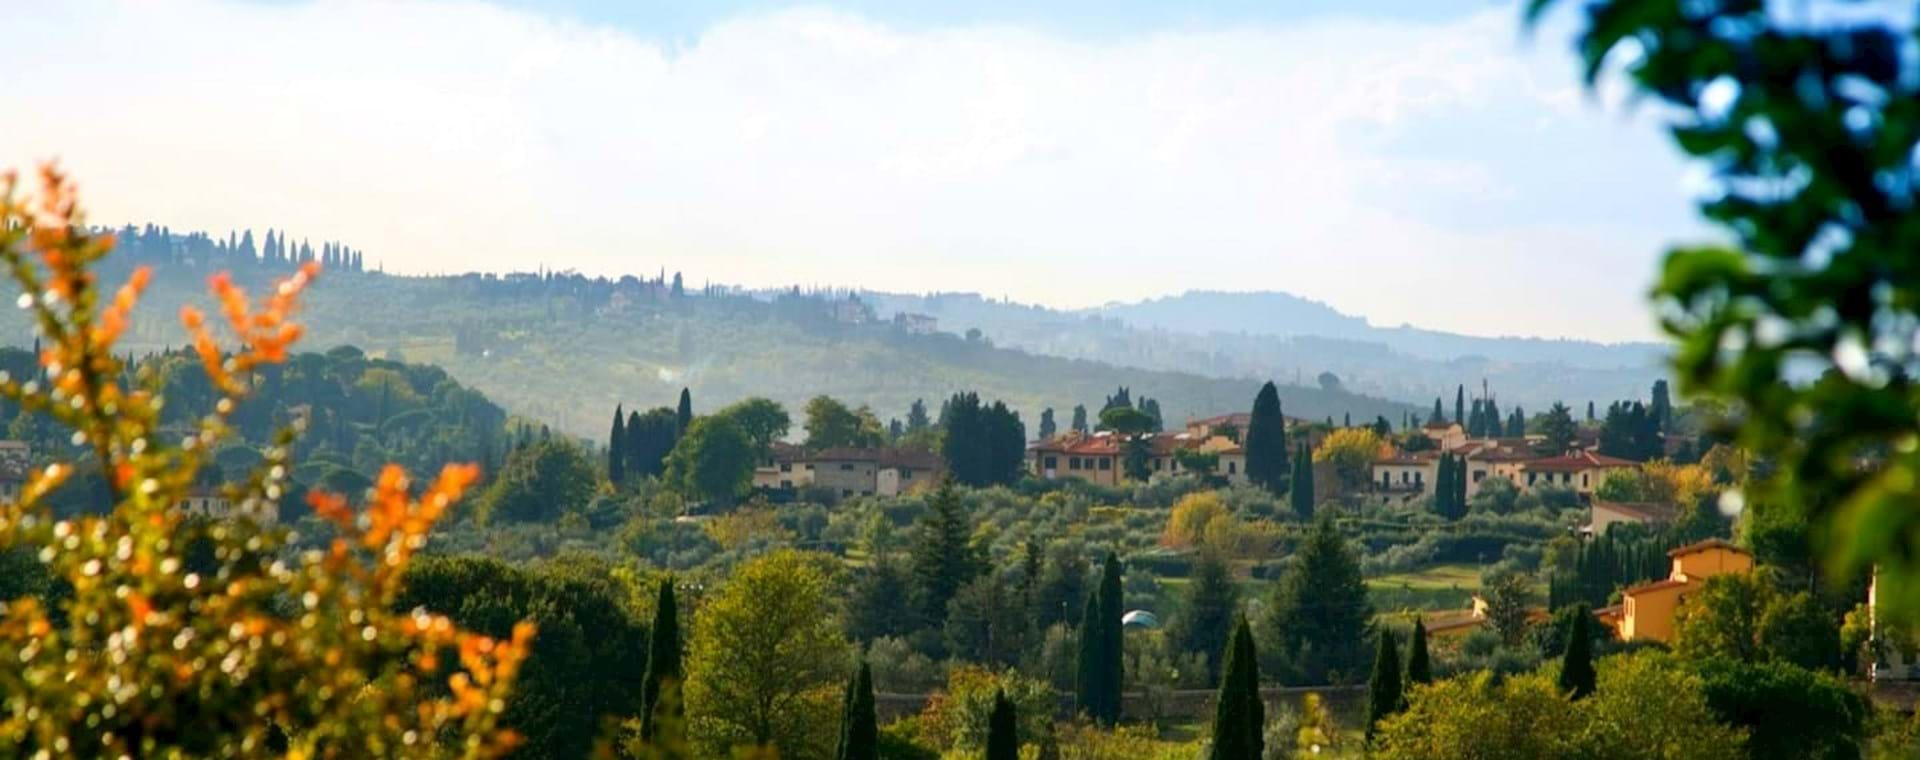 Florence Vineyard Tour with Wine Tasting & Authentic Tuscan Dinner